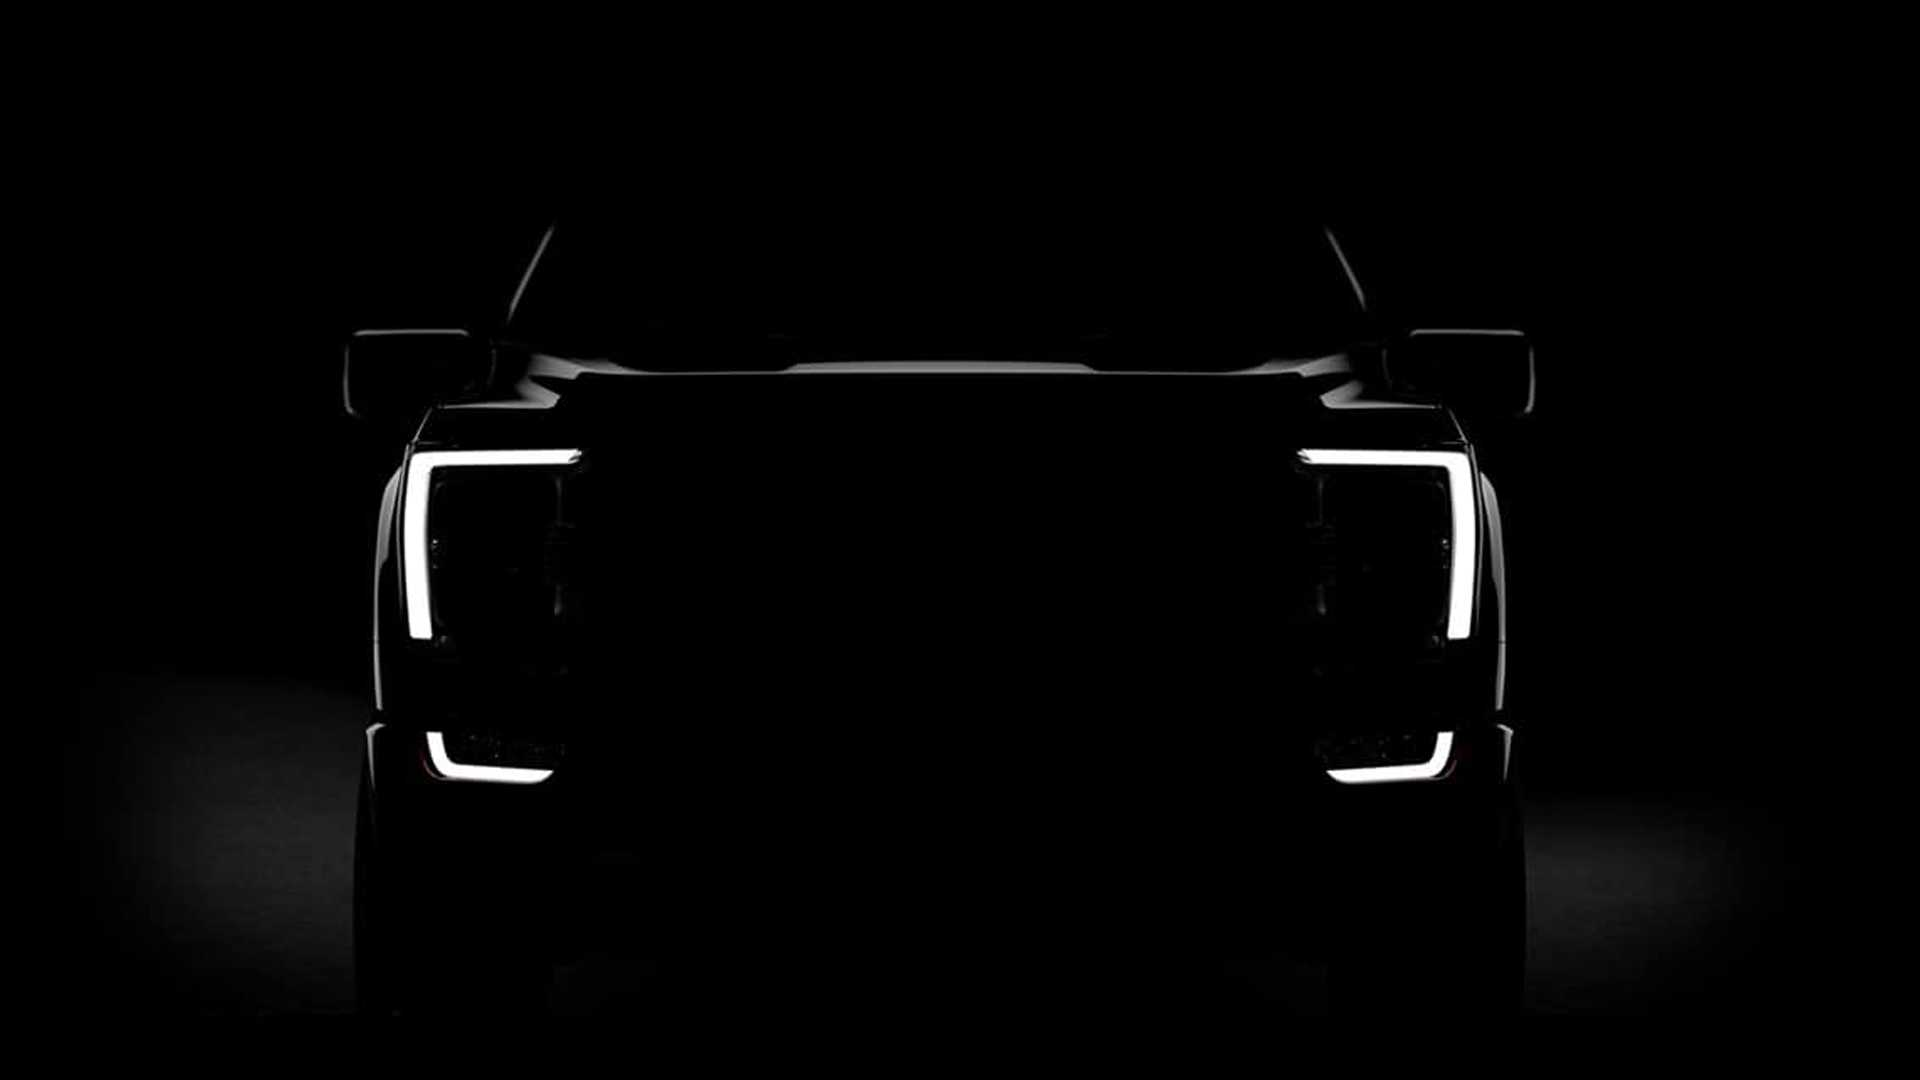 2021 Ford F 150 Teaser Lights The Way For June 25 Reveal 1920x1080